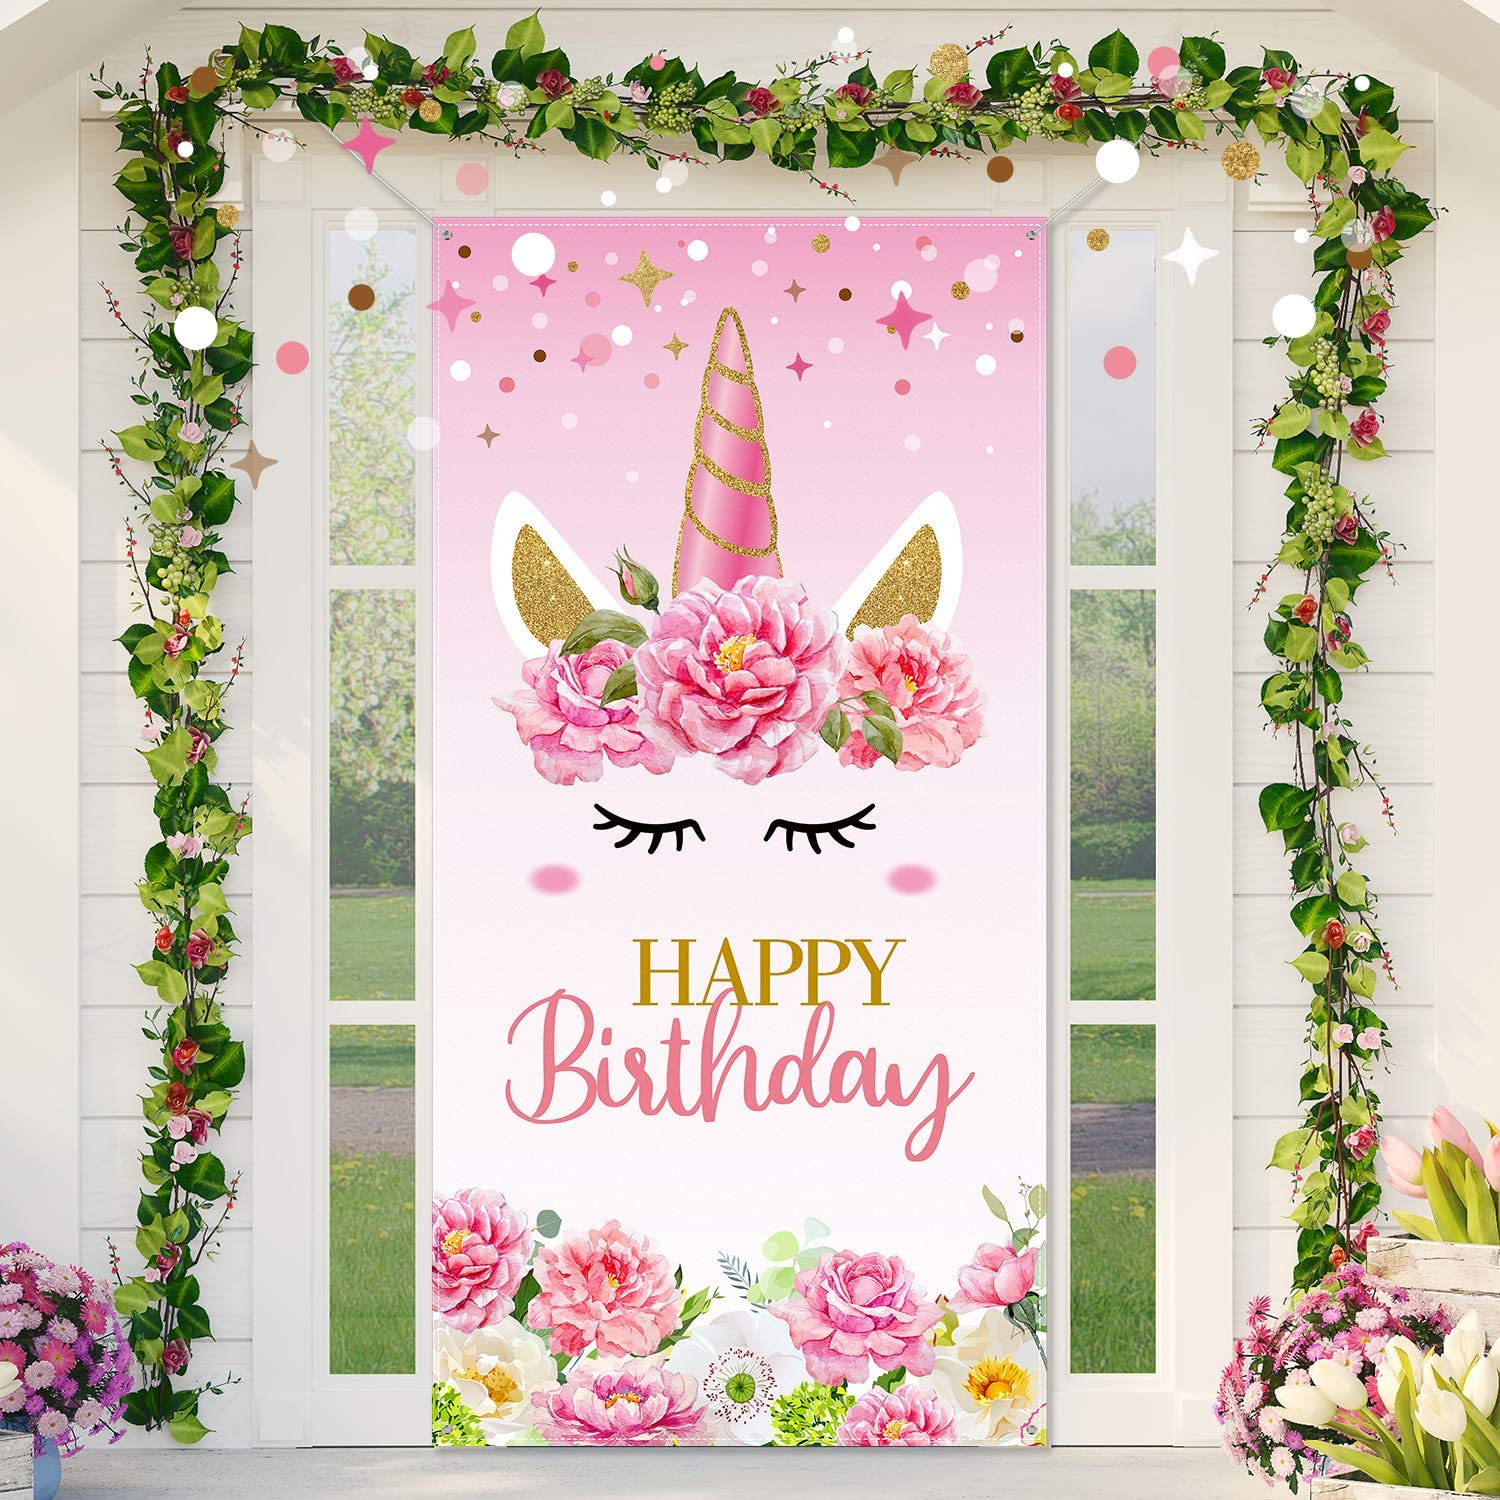 Unicorn Happy Birthday Backdrop Unicorn Party Decoration, Large Fabric Pink Floral Unicorn Door Banner Background for Kids Girls Birthday Baby Shower Party Supplies, 70 x 35 Inch